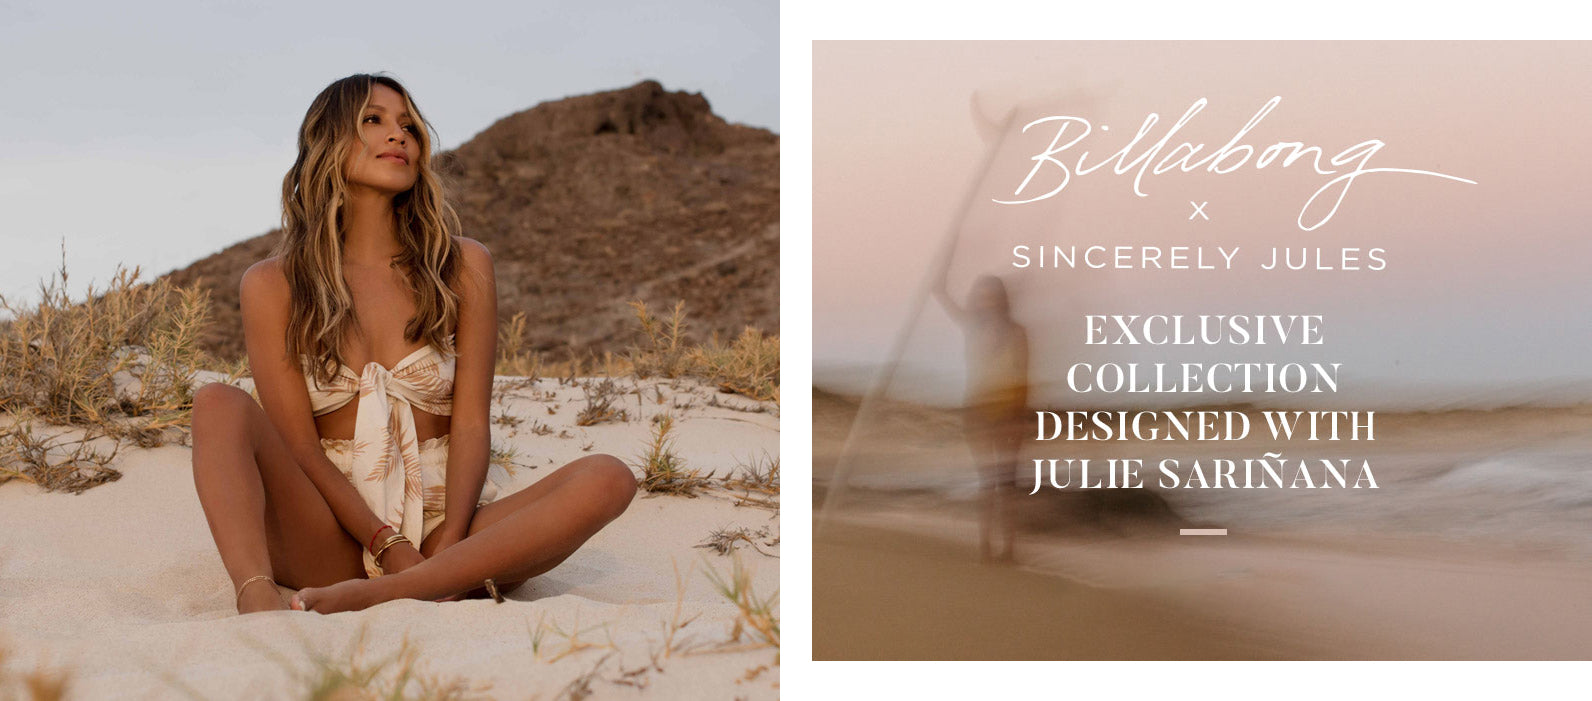 Billabong Spring 2019 | Sincerely Jules Exclusive Collection Designed With Julie Sariñana